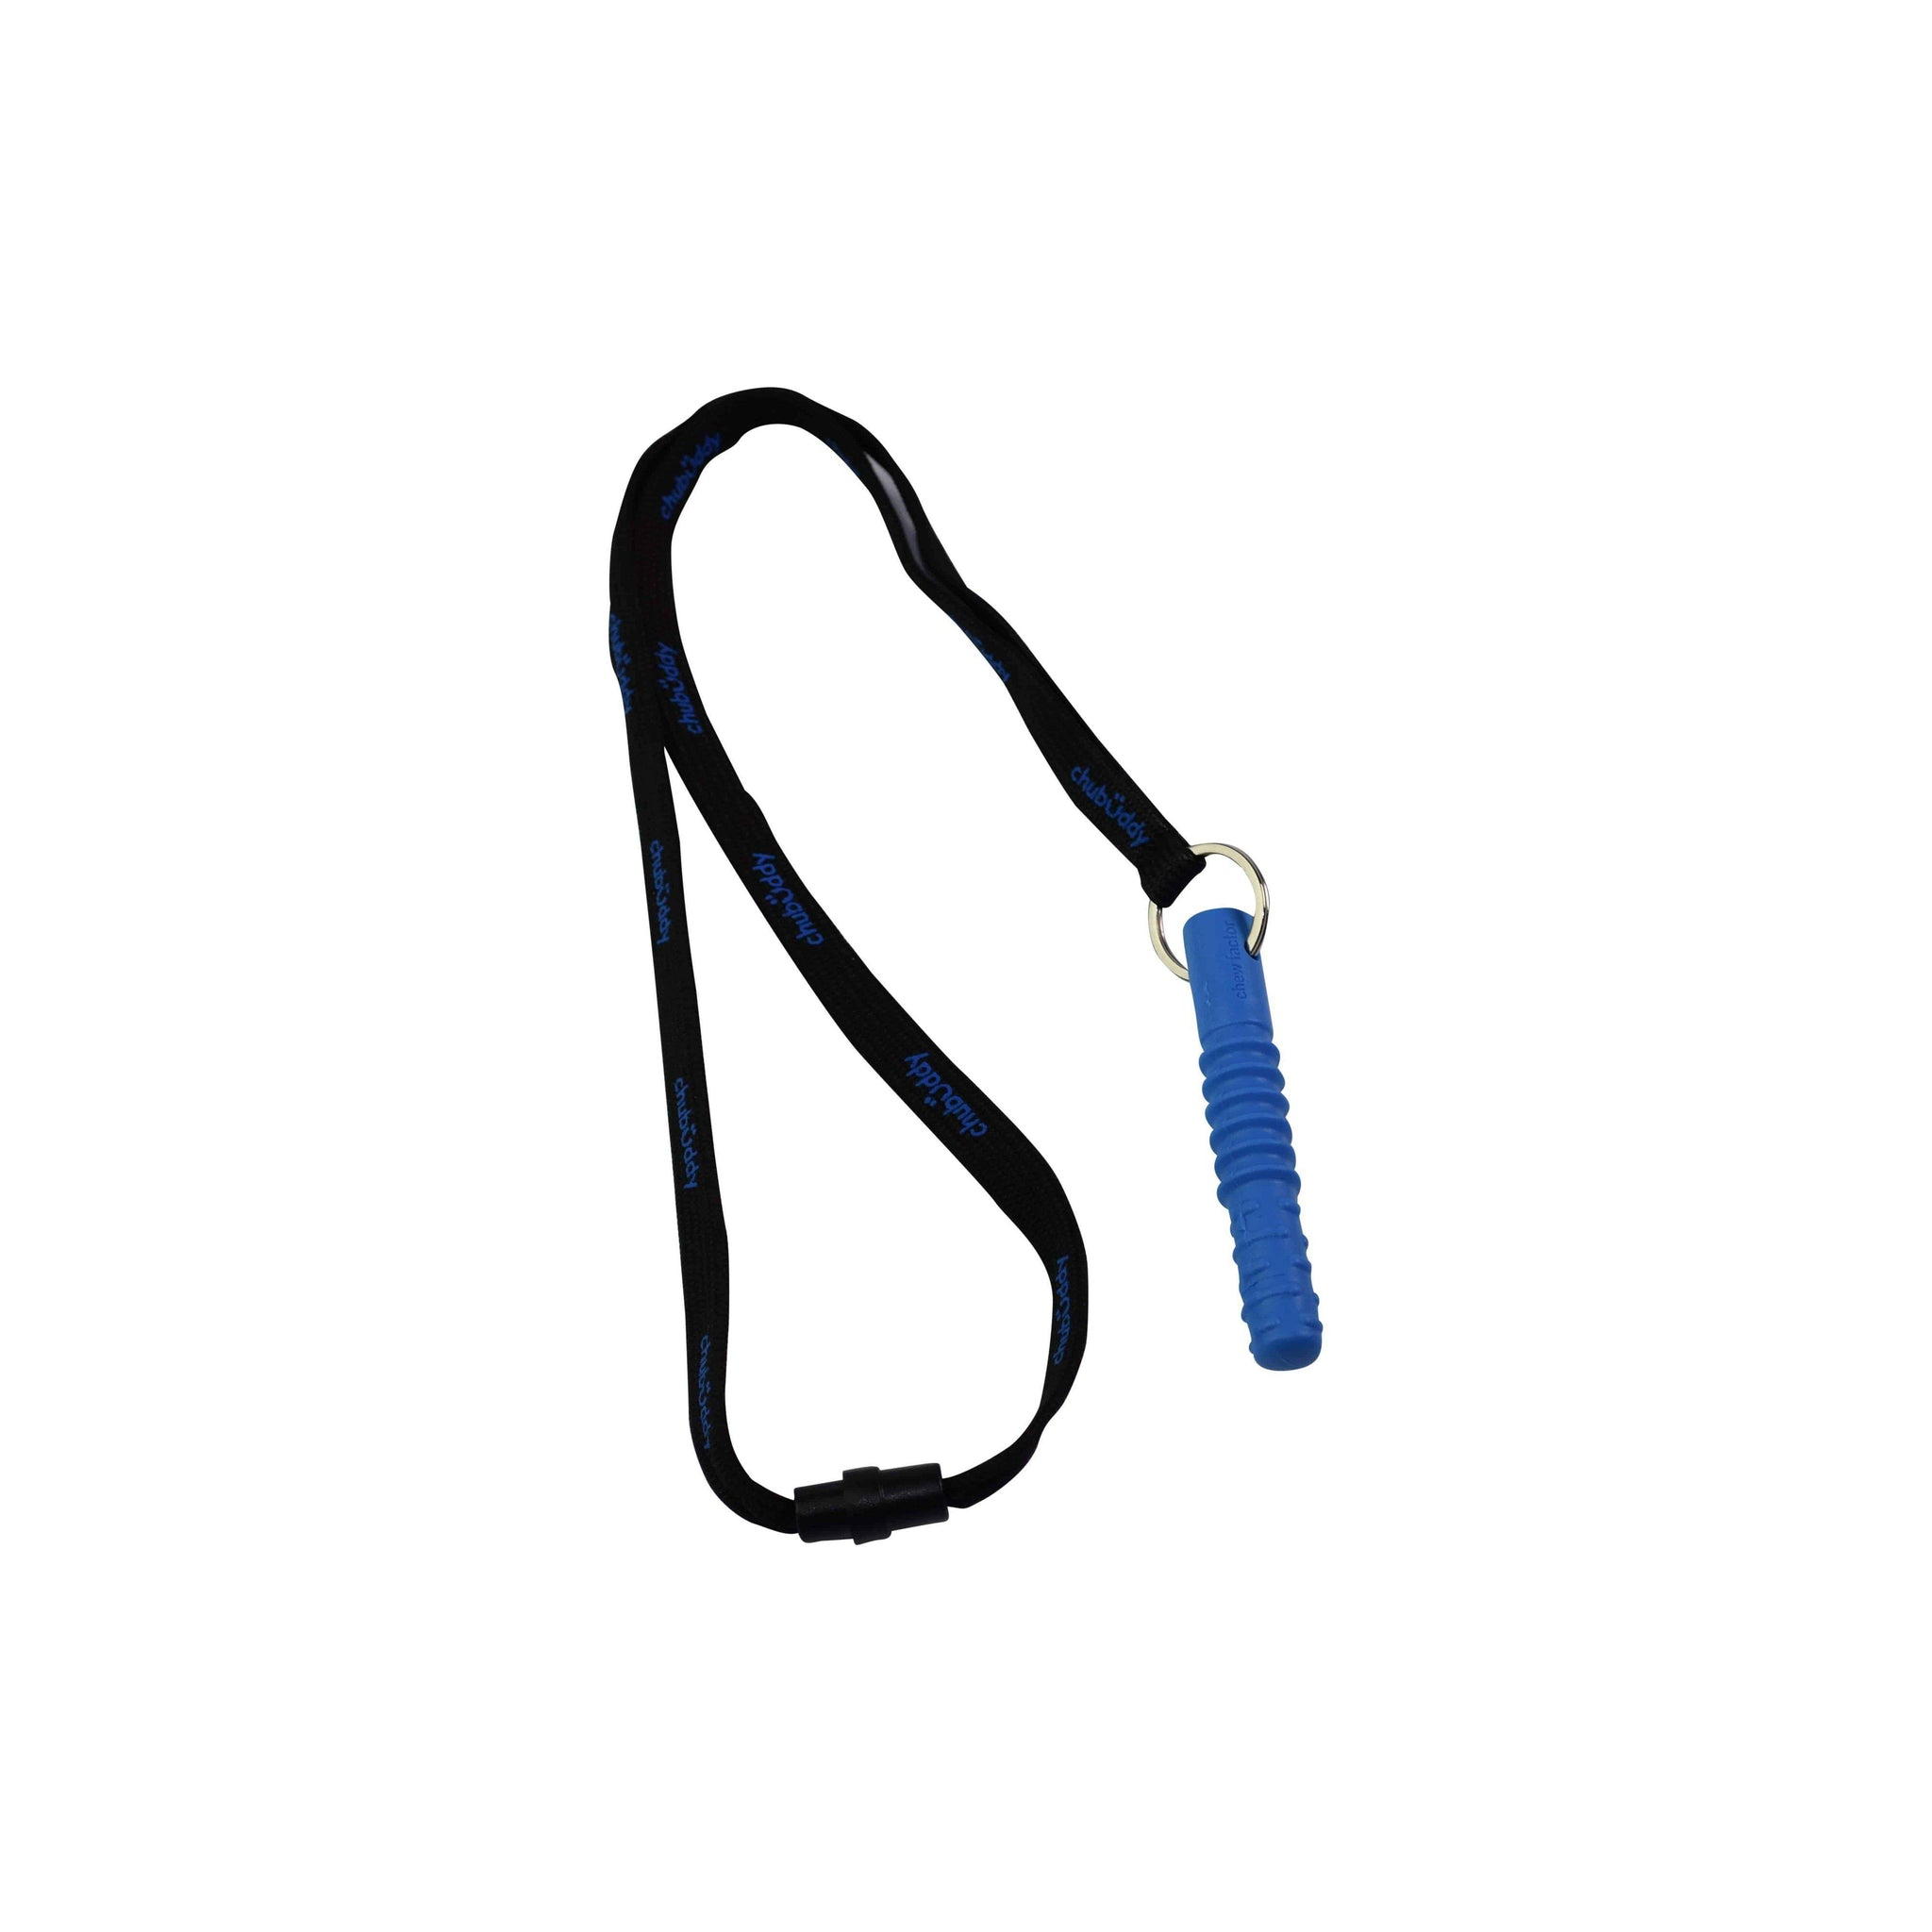 Tube Zilla Jr, Blue On Neck Lanyard  | 70A Durometer Soft | Chew Factor 3.0 Strong |  For Smaller Mouths